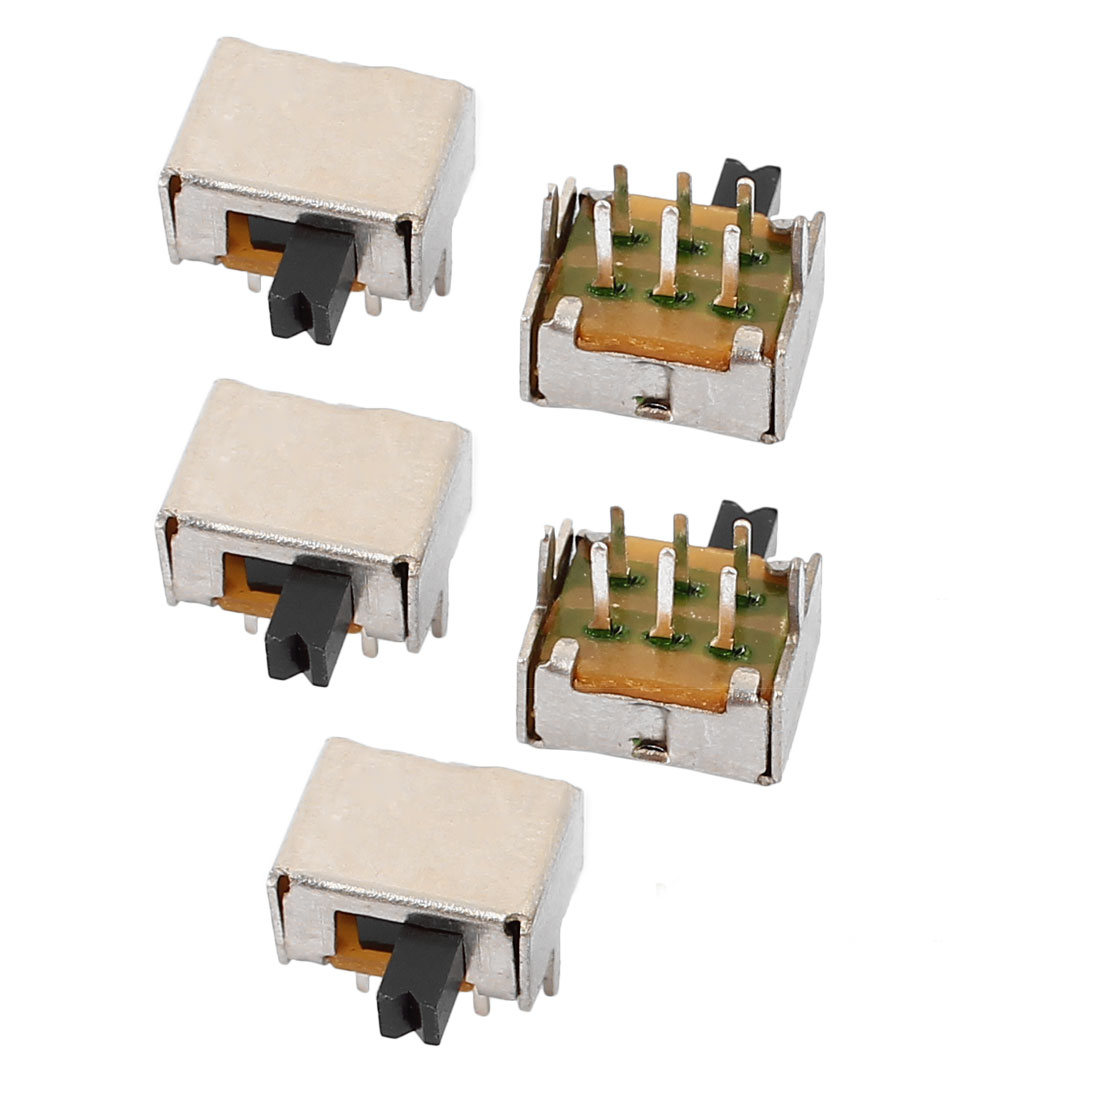 5Pcs 2 Position 6P DPDT Micro Slide Switch Latching Digital Product Switch